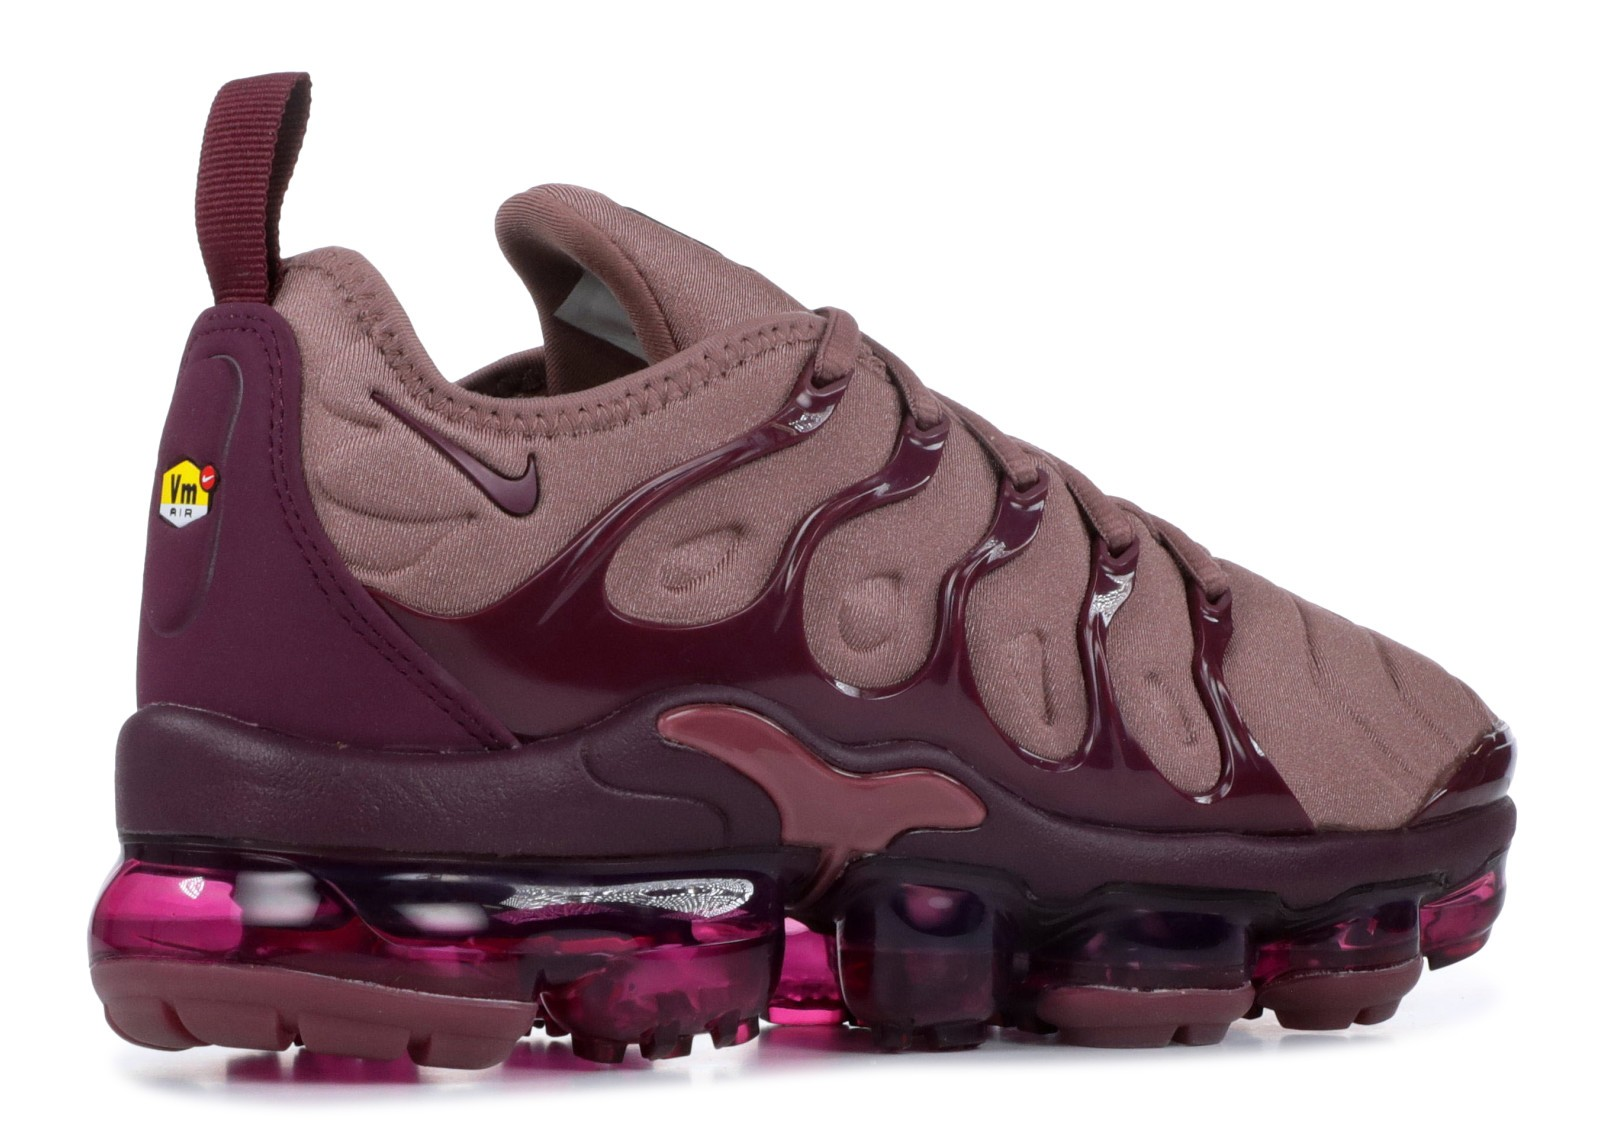 separation shoes c4258 7fdbc Nike Air VaporMax Plus Smokey Mauve AO4550-200